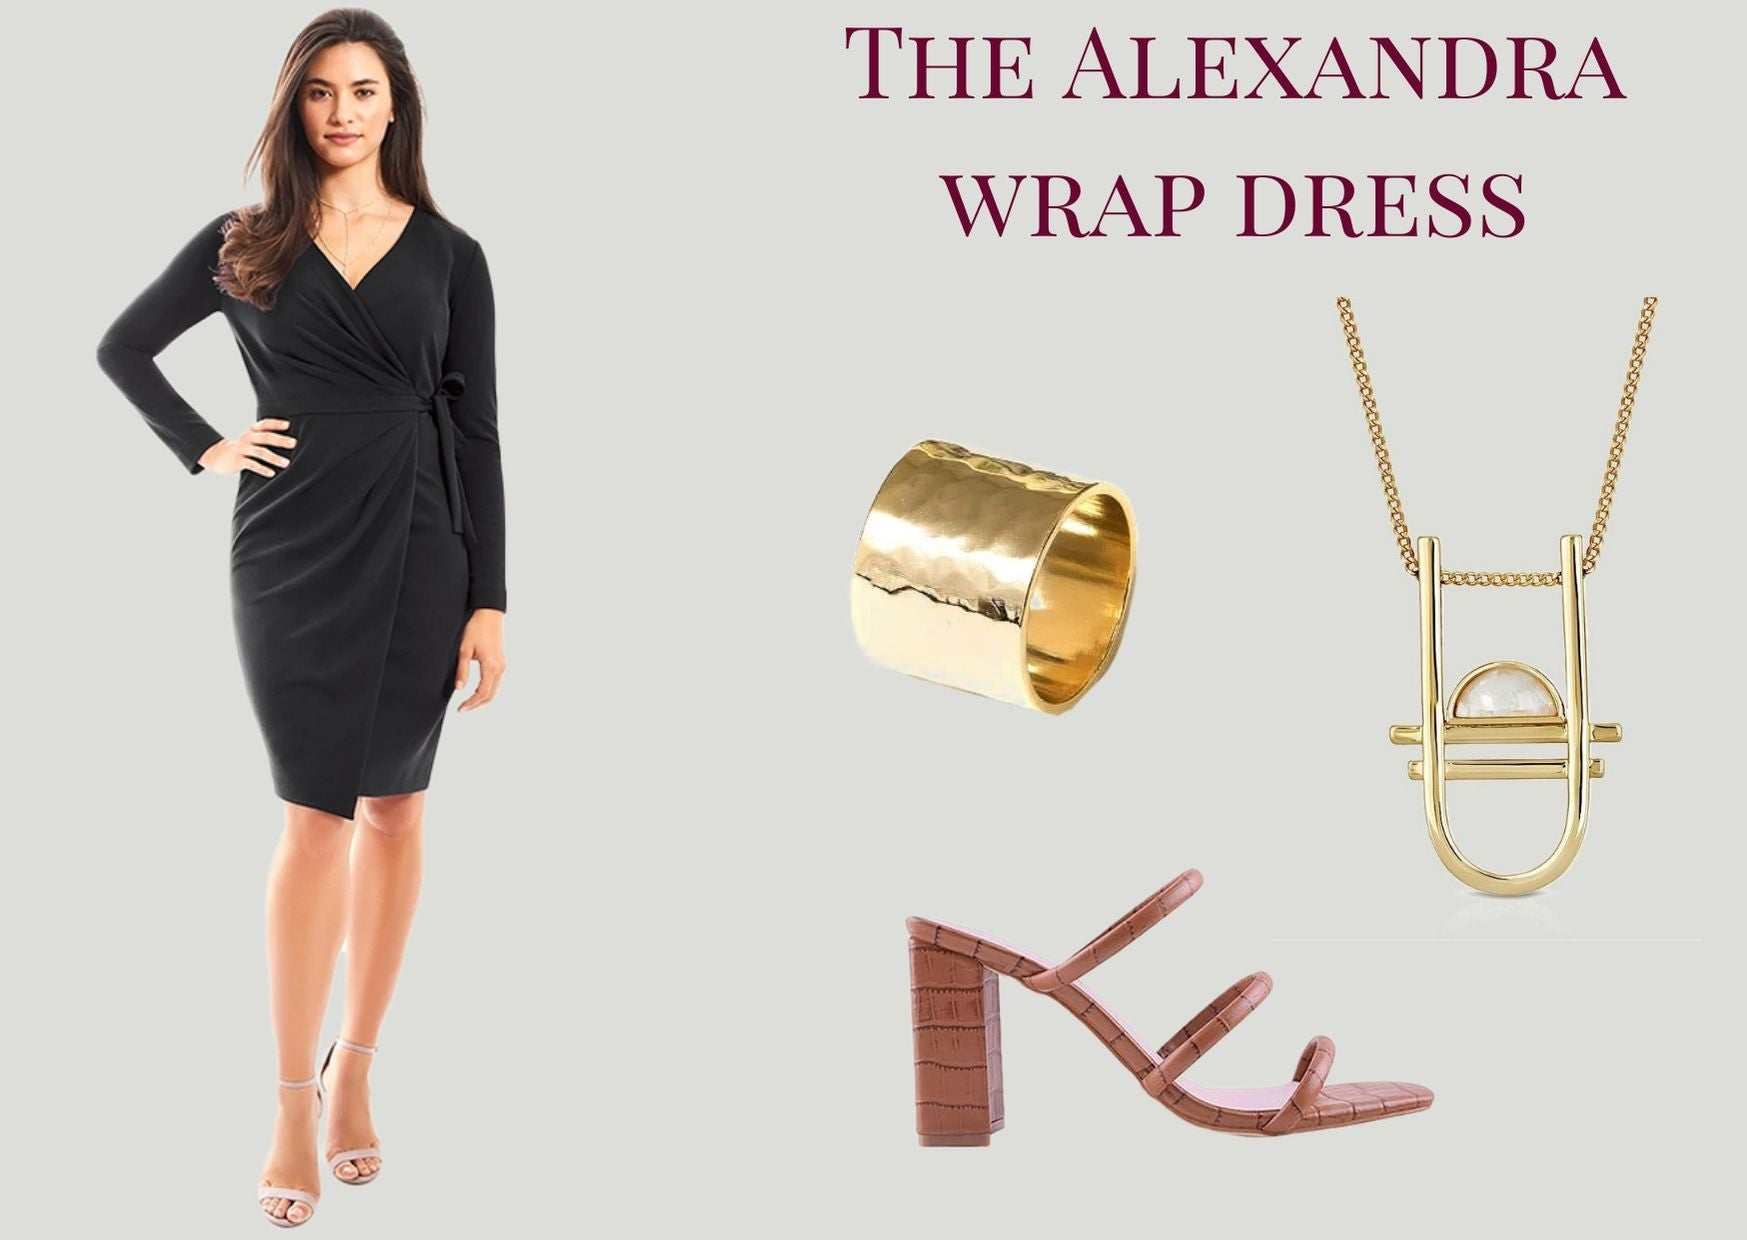 Alexandra Wrap Dress Queen Anna House of Fashion